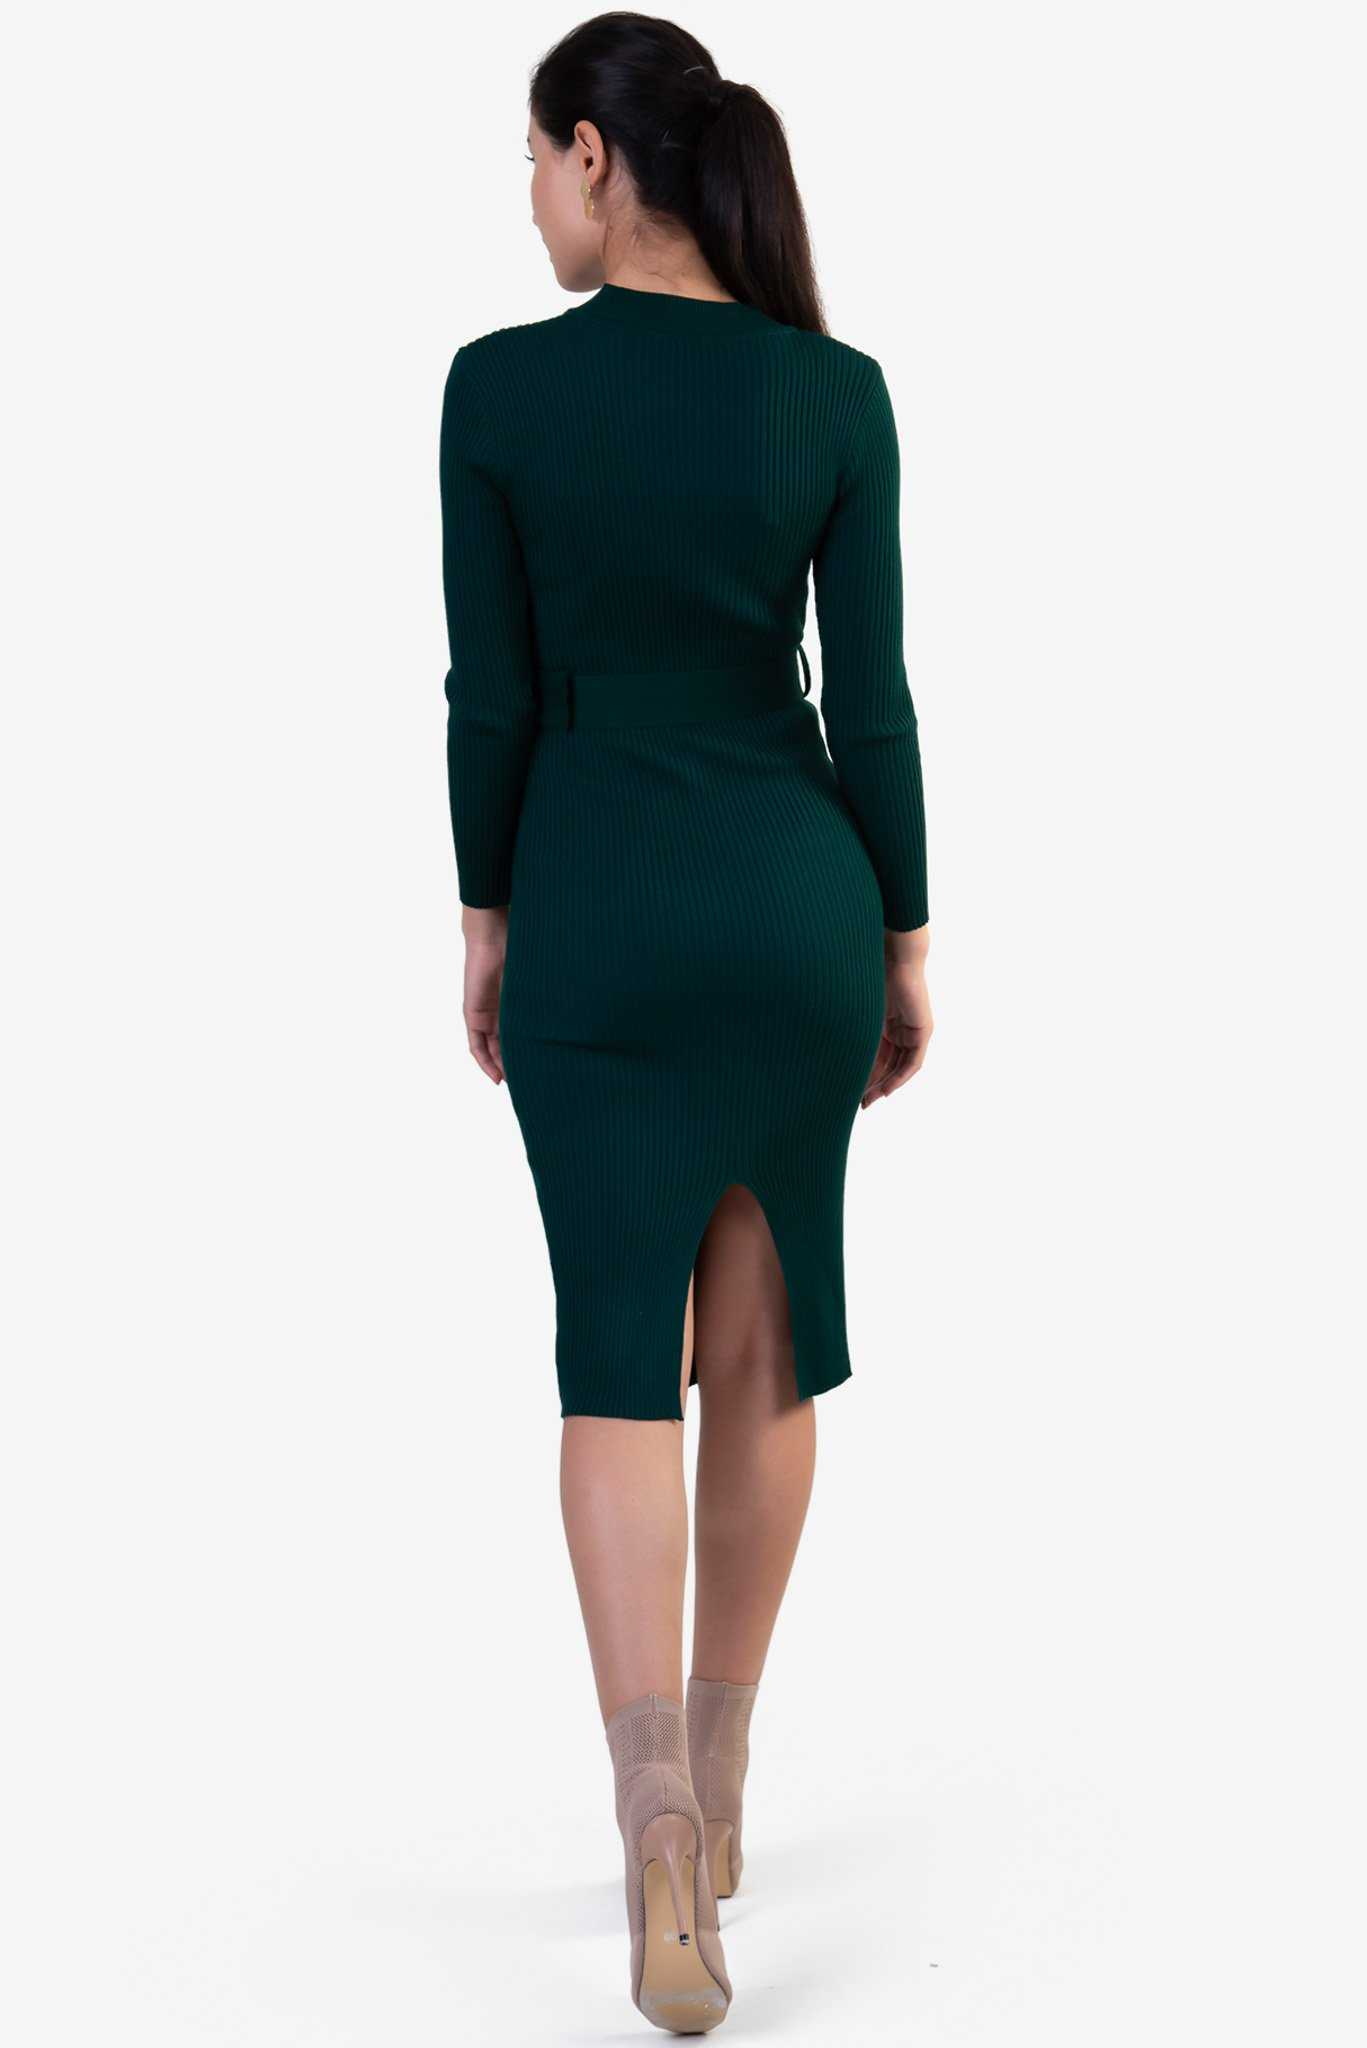 Knit Bodycon Dress - Green | Raw Orange